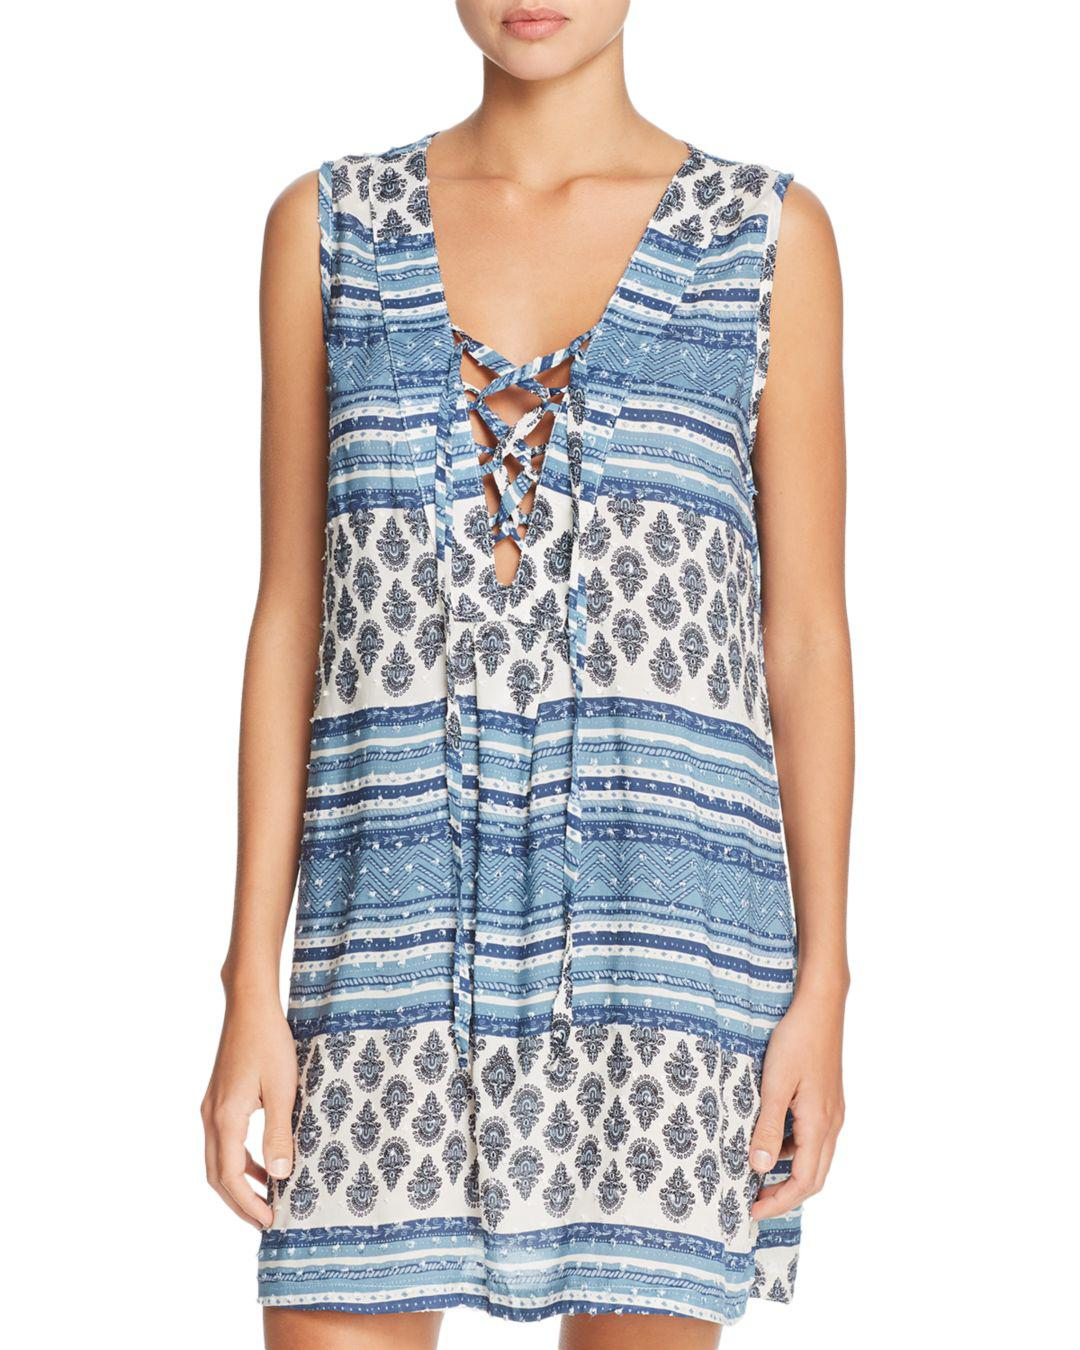 ed8298ad31 J Valdi Topanga Cruise Tank Dress Swim Cover-up in Blue - Lyst